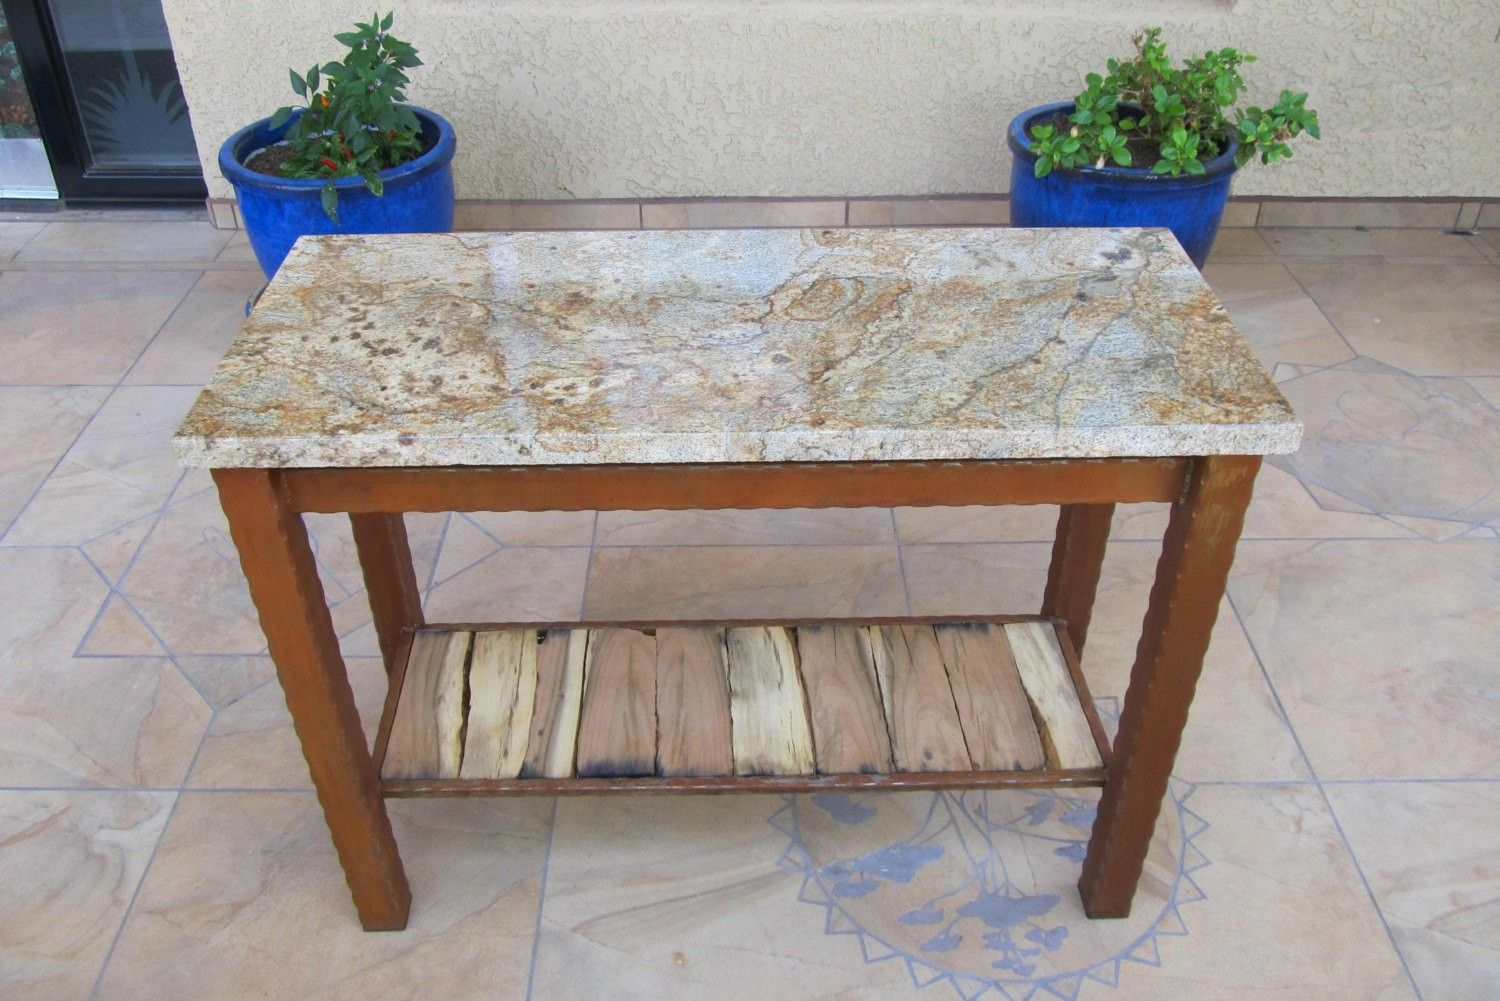 Catherine Granite Console Table Decoration Is A Theme Concepts Refurbished Re Cycled Are Always Being Released And Improved Upon This Alone Welco